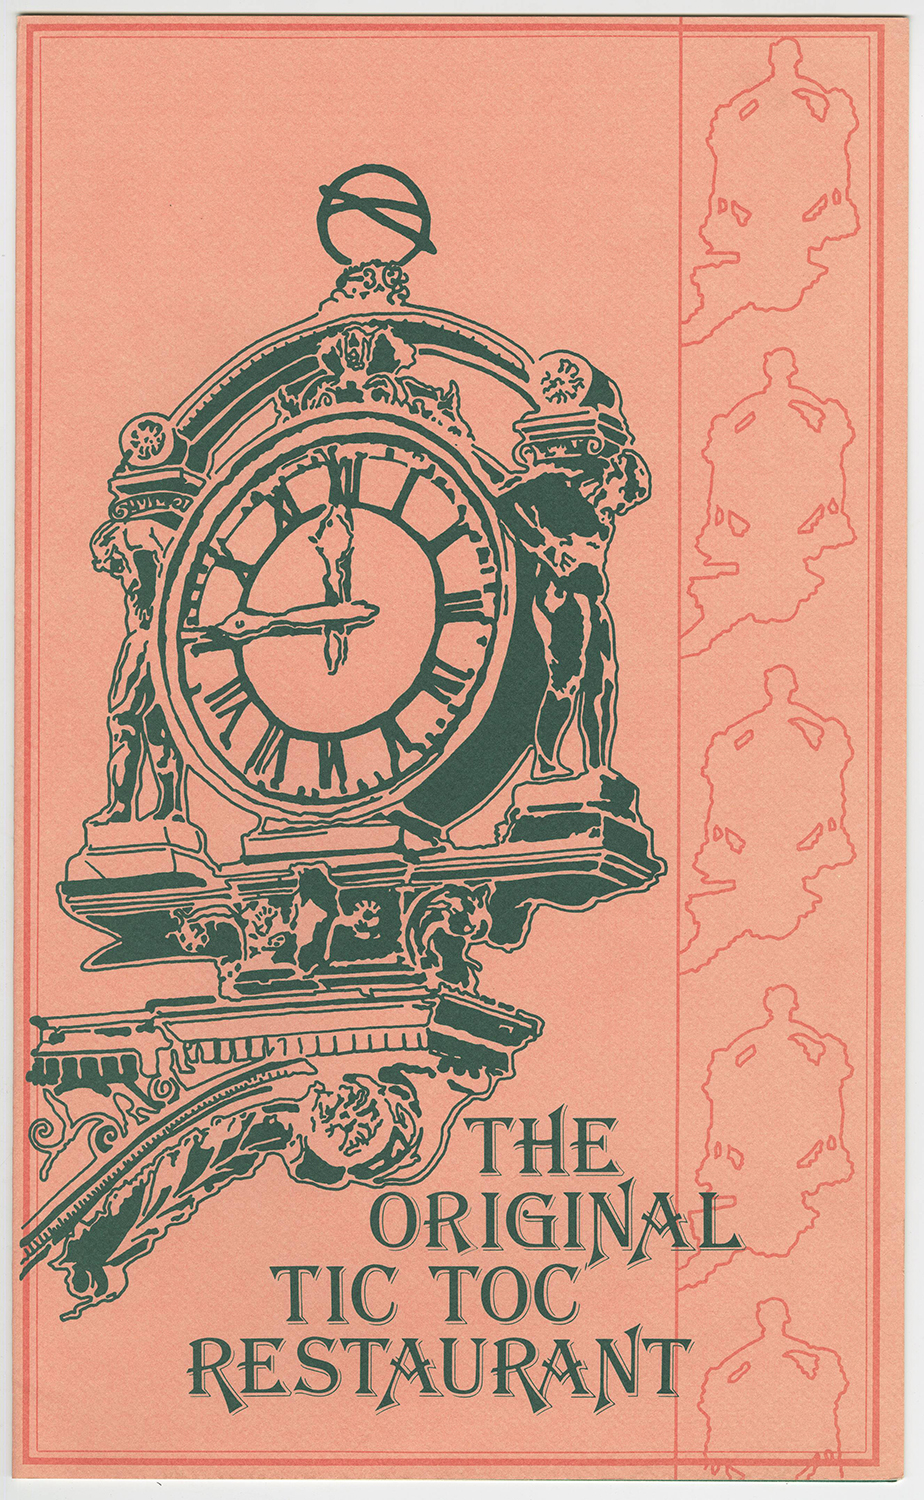 The front page of the Tic Toc Restaurant menu, Kaufmann's Department Store.